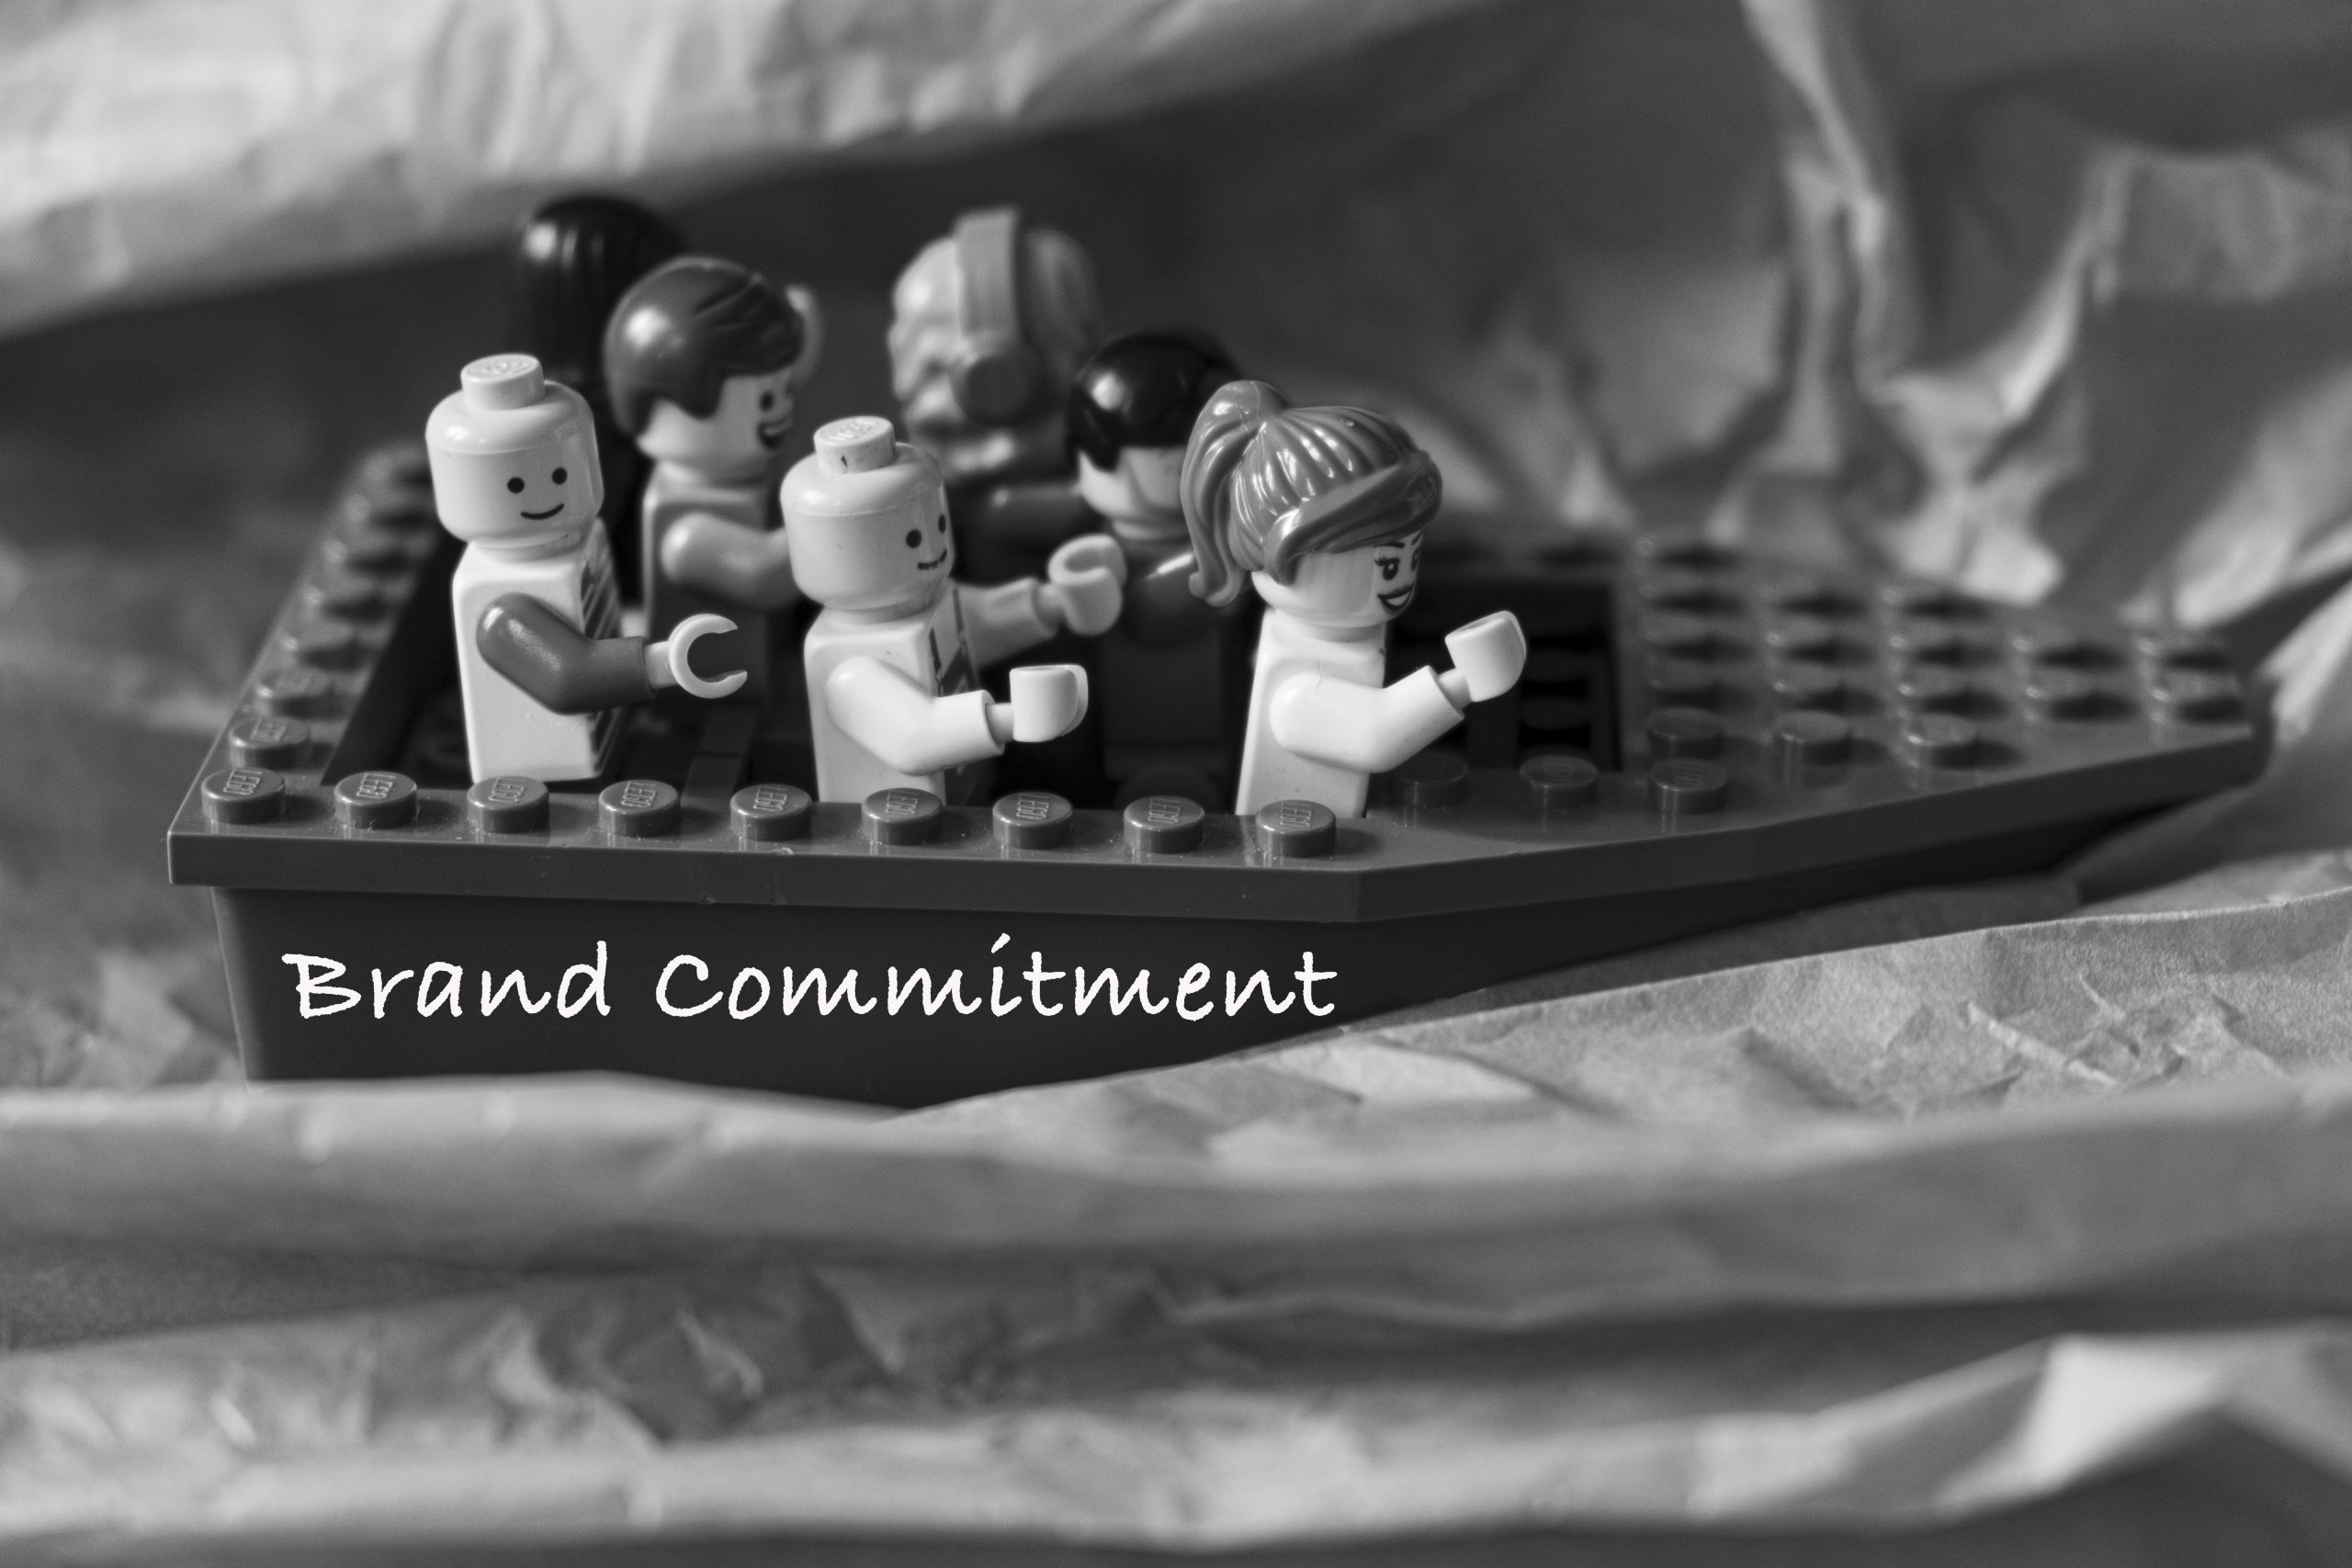 """Some brick figures on a boat called """"Brand Commitment"""""""